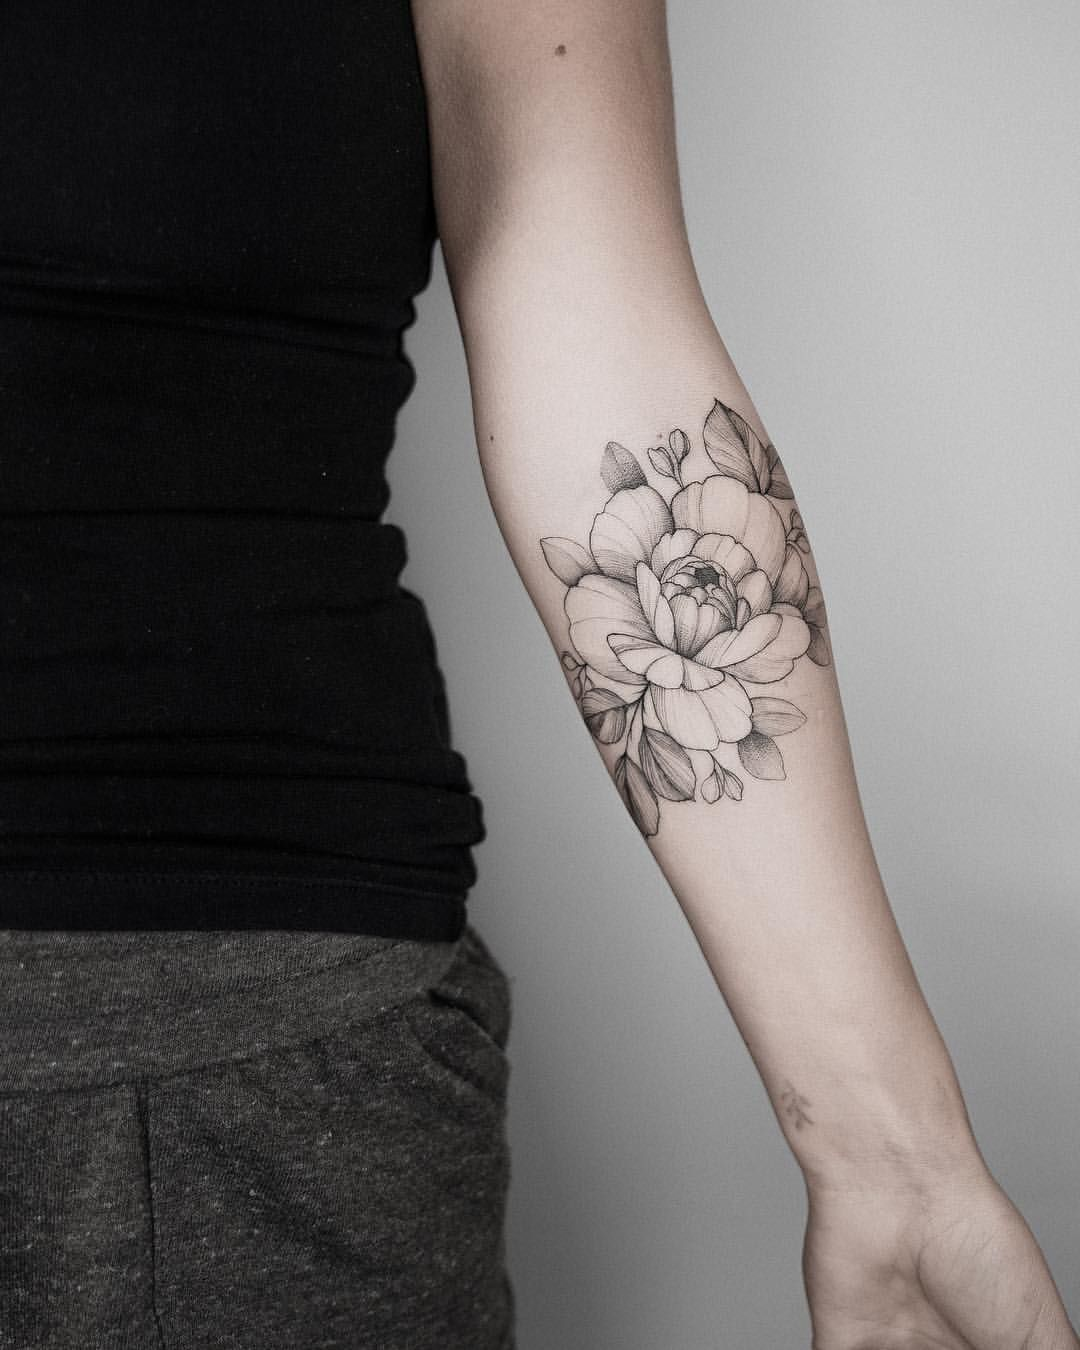 Peony Fine Line Floral Forearm Arm Tattoo Cute Delicate Feminine Tattoos Flowers And Florals Animal Floral Tattoo Floral Tattoo Sleeve Floral Tattoo Design